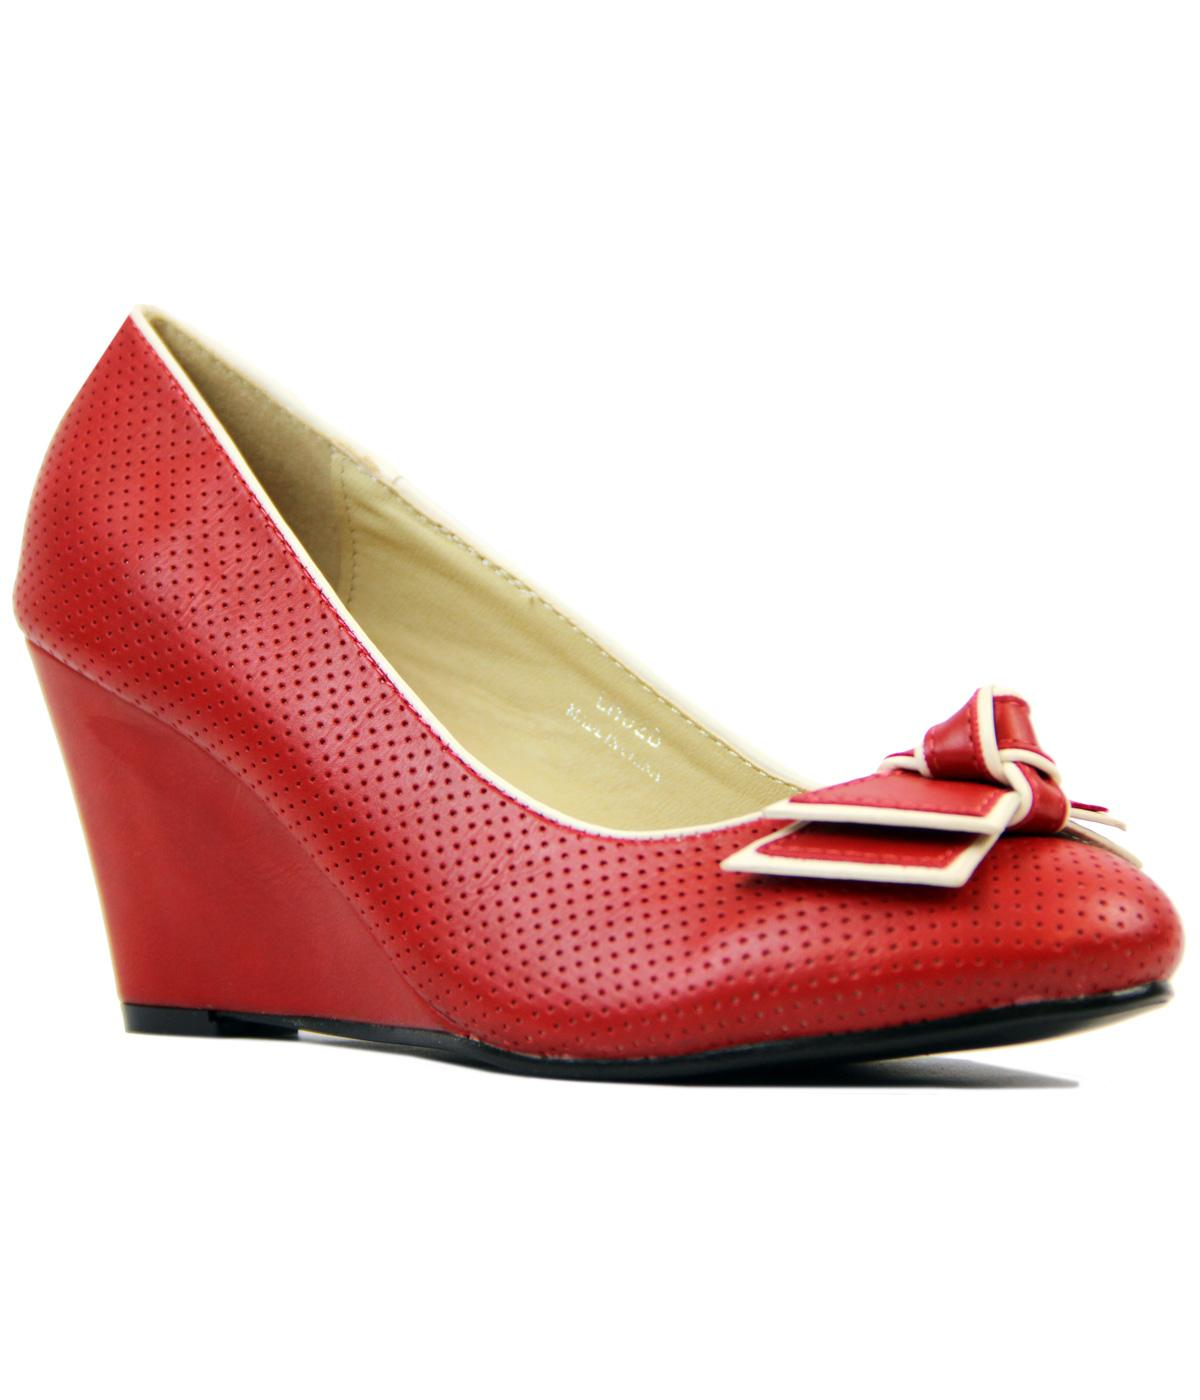 Elisa LULU HUN Retro 1960s Vintage Mid Wedges Red